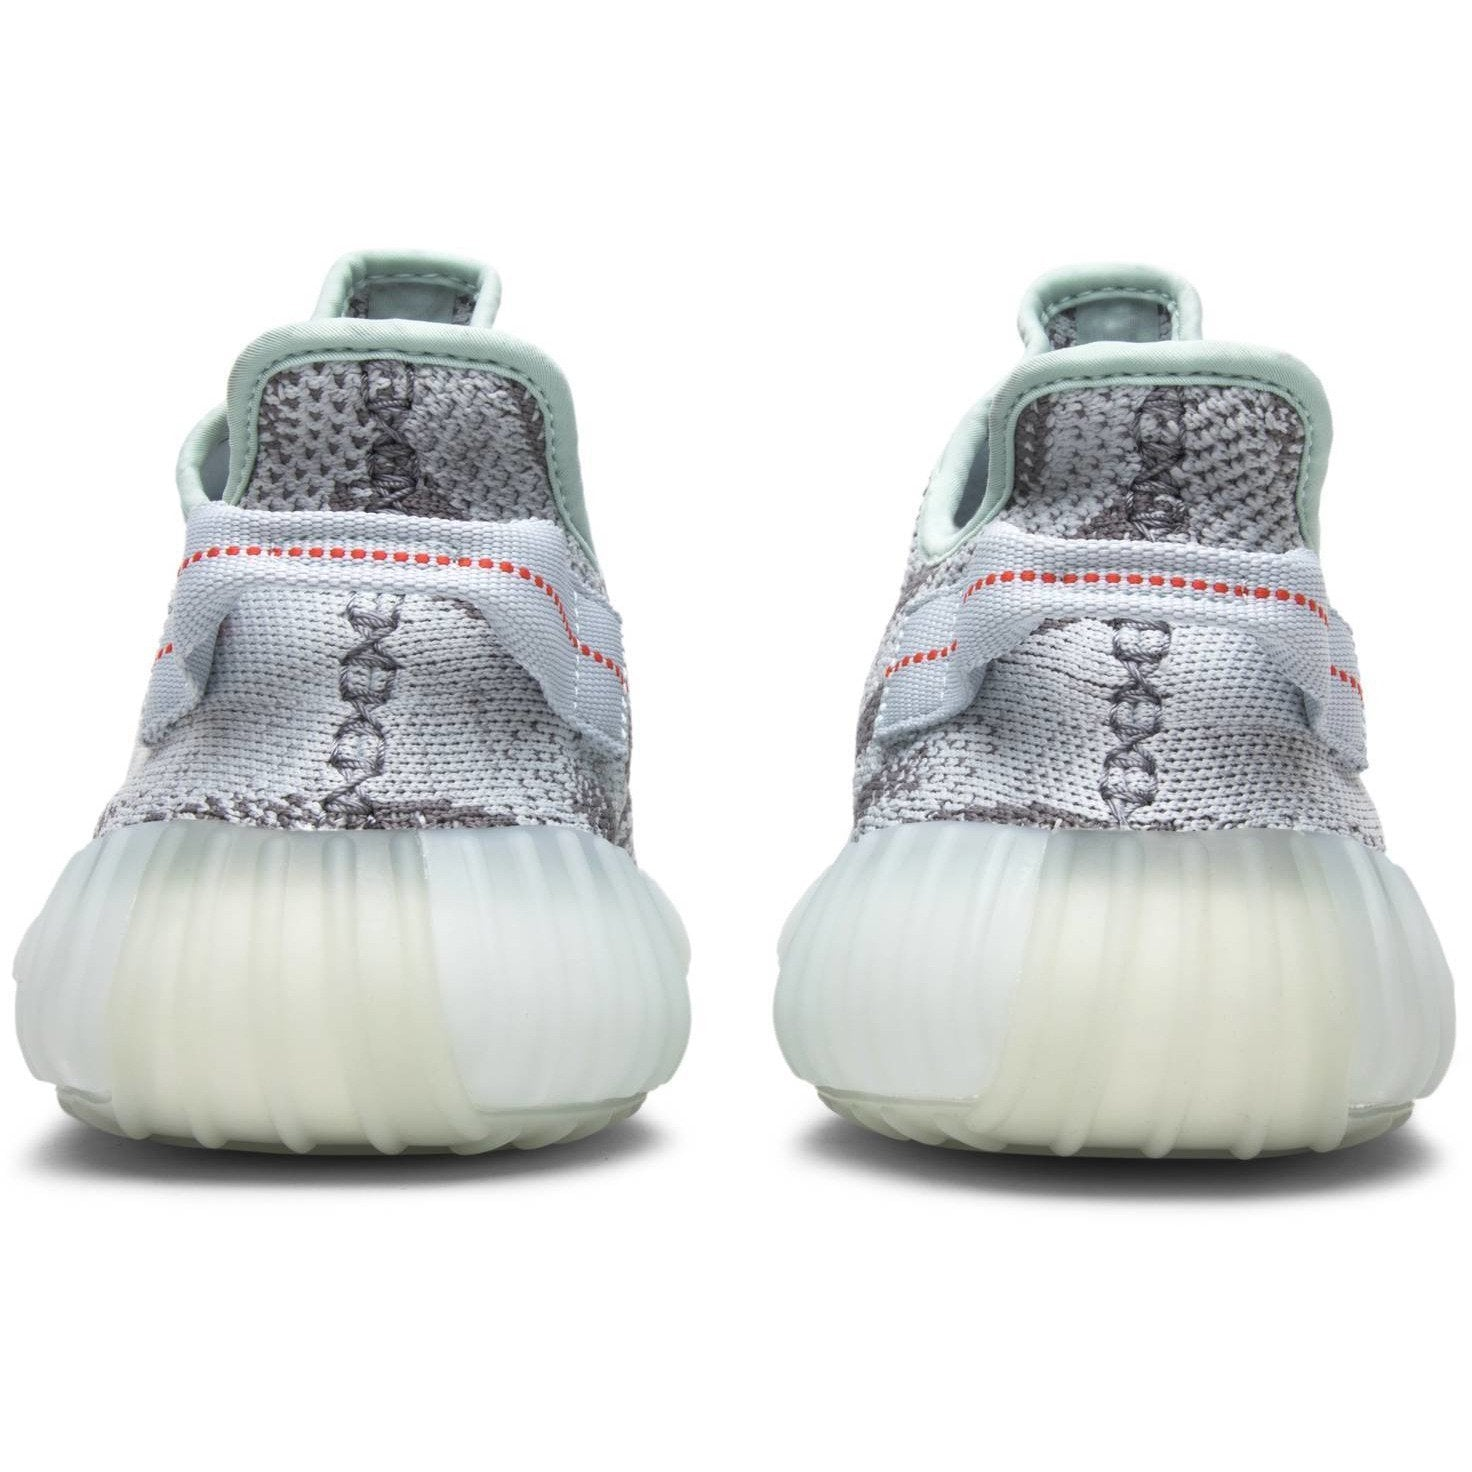 adidas Yeezy Boost 350 V2 'Blue Tint' - After Burn